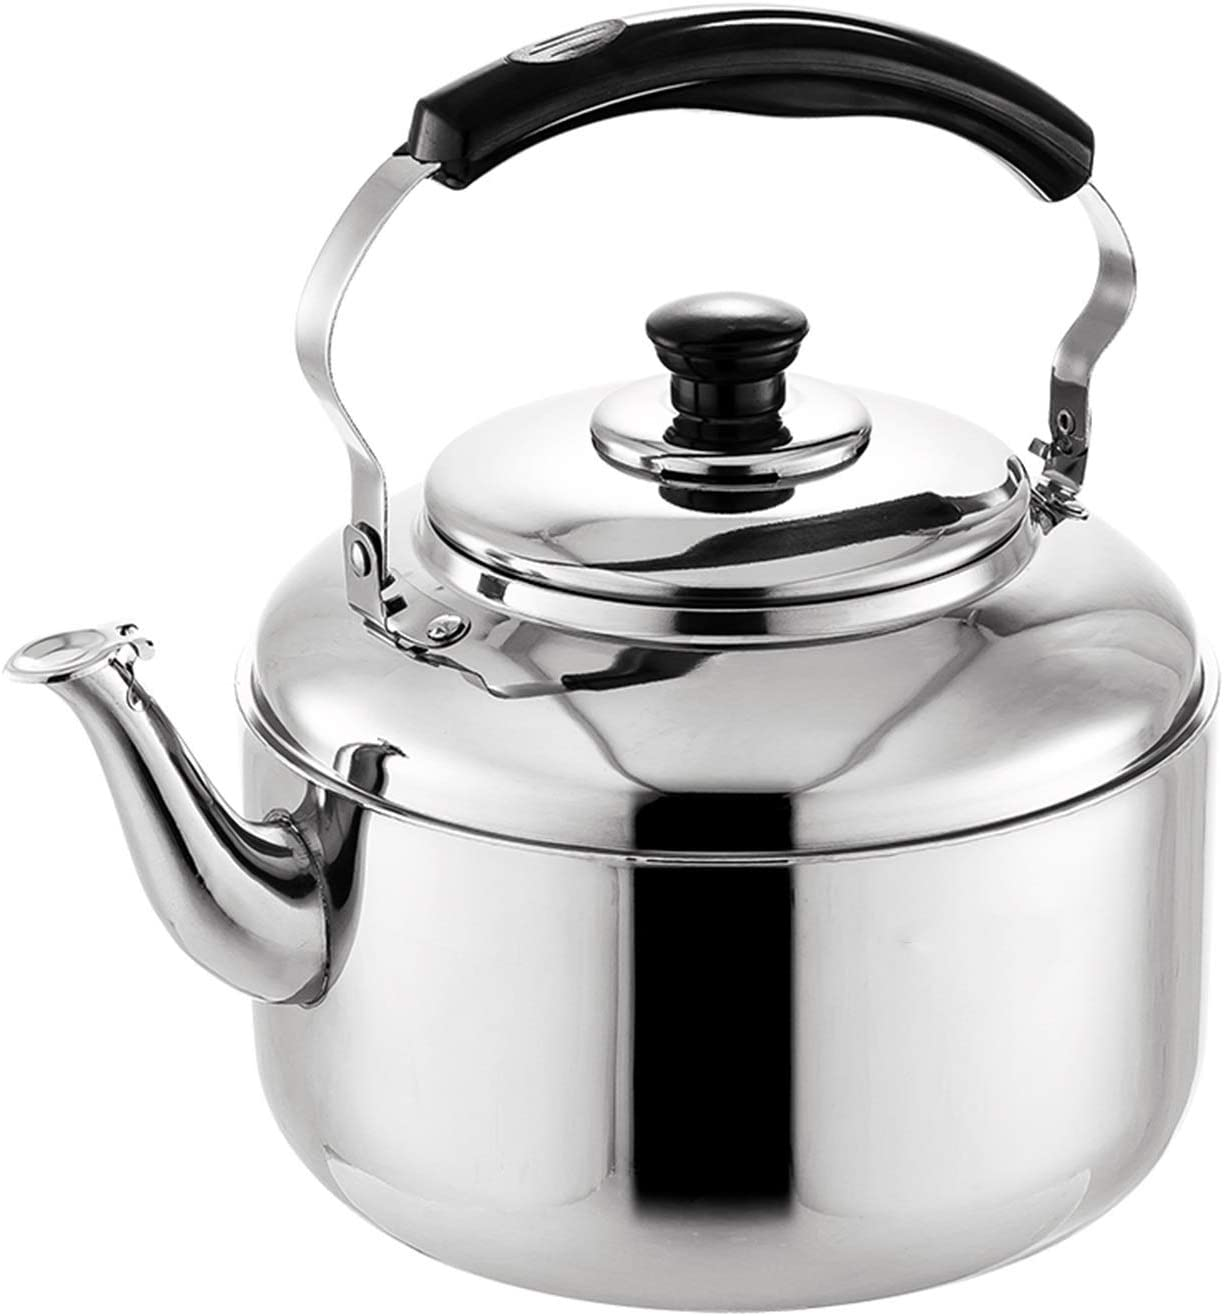 Whistling Kettles Large Capacity 304 Stainless Kettle Free shipping anywhere in the nation 2021 new Steel Tea